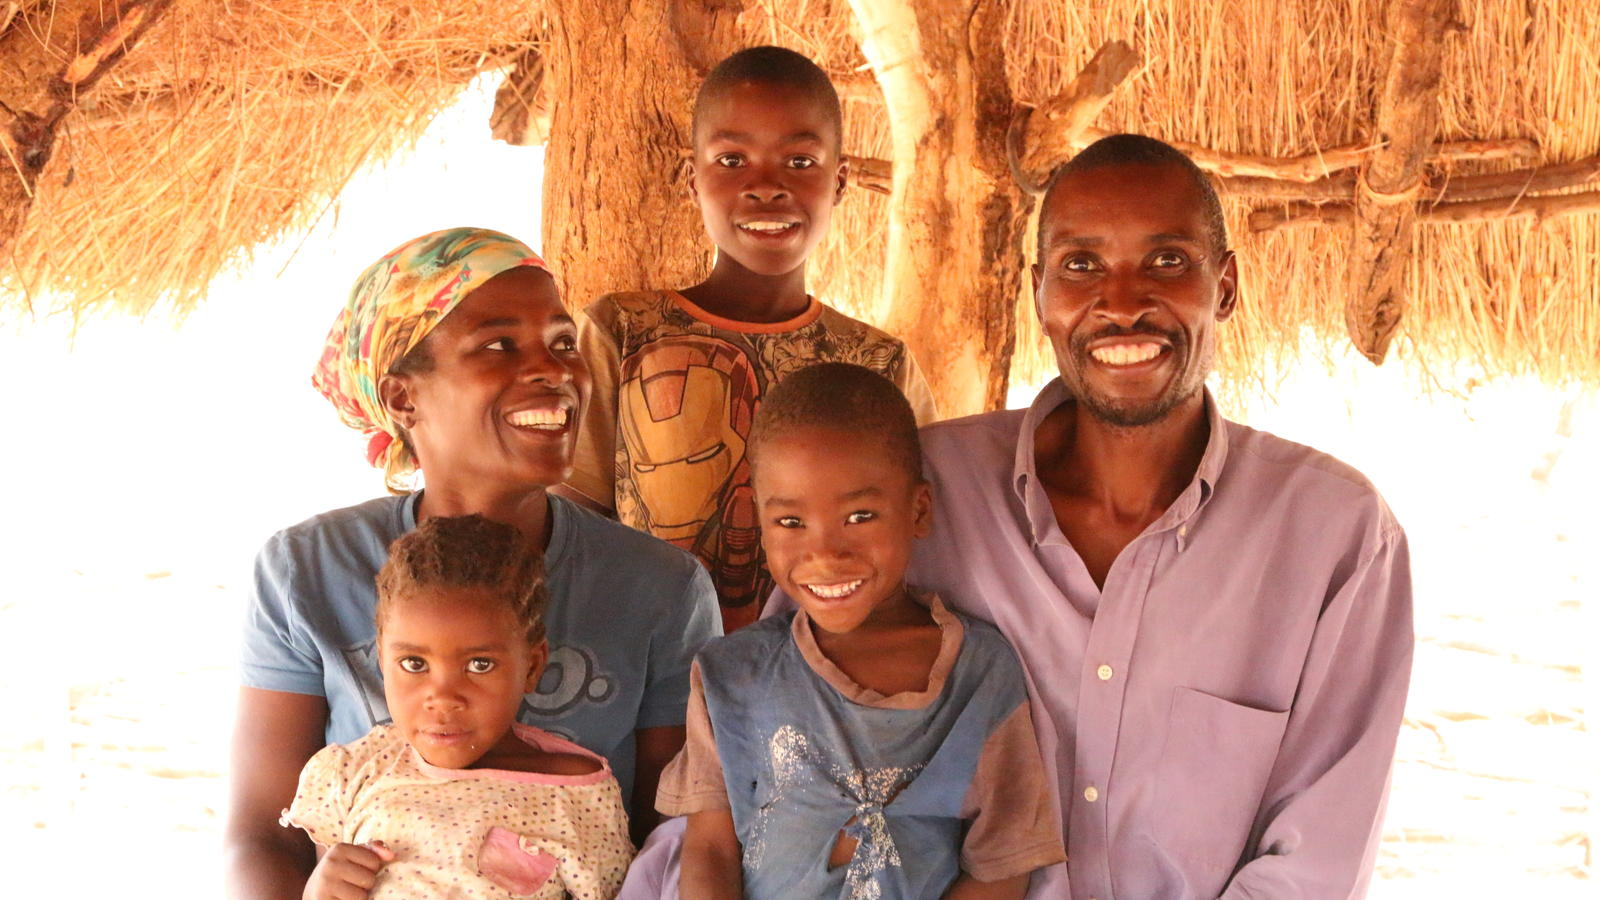 Family photo for Paul Chasulwa the Community Health Worker for Chikuni Village. He was with his wife Sarafina, Sons Brian and Patrick and daughter Beatrice, Monze, Zambia Nov 16